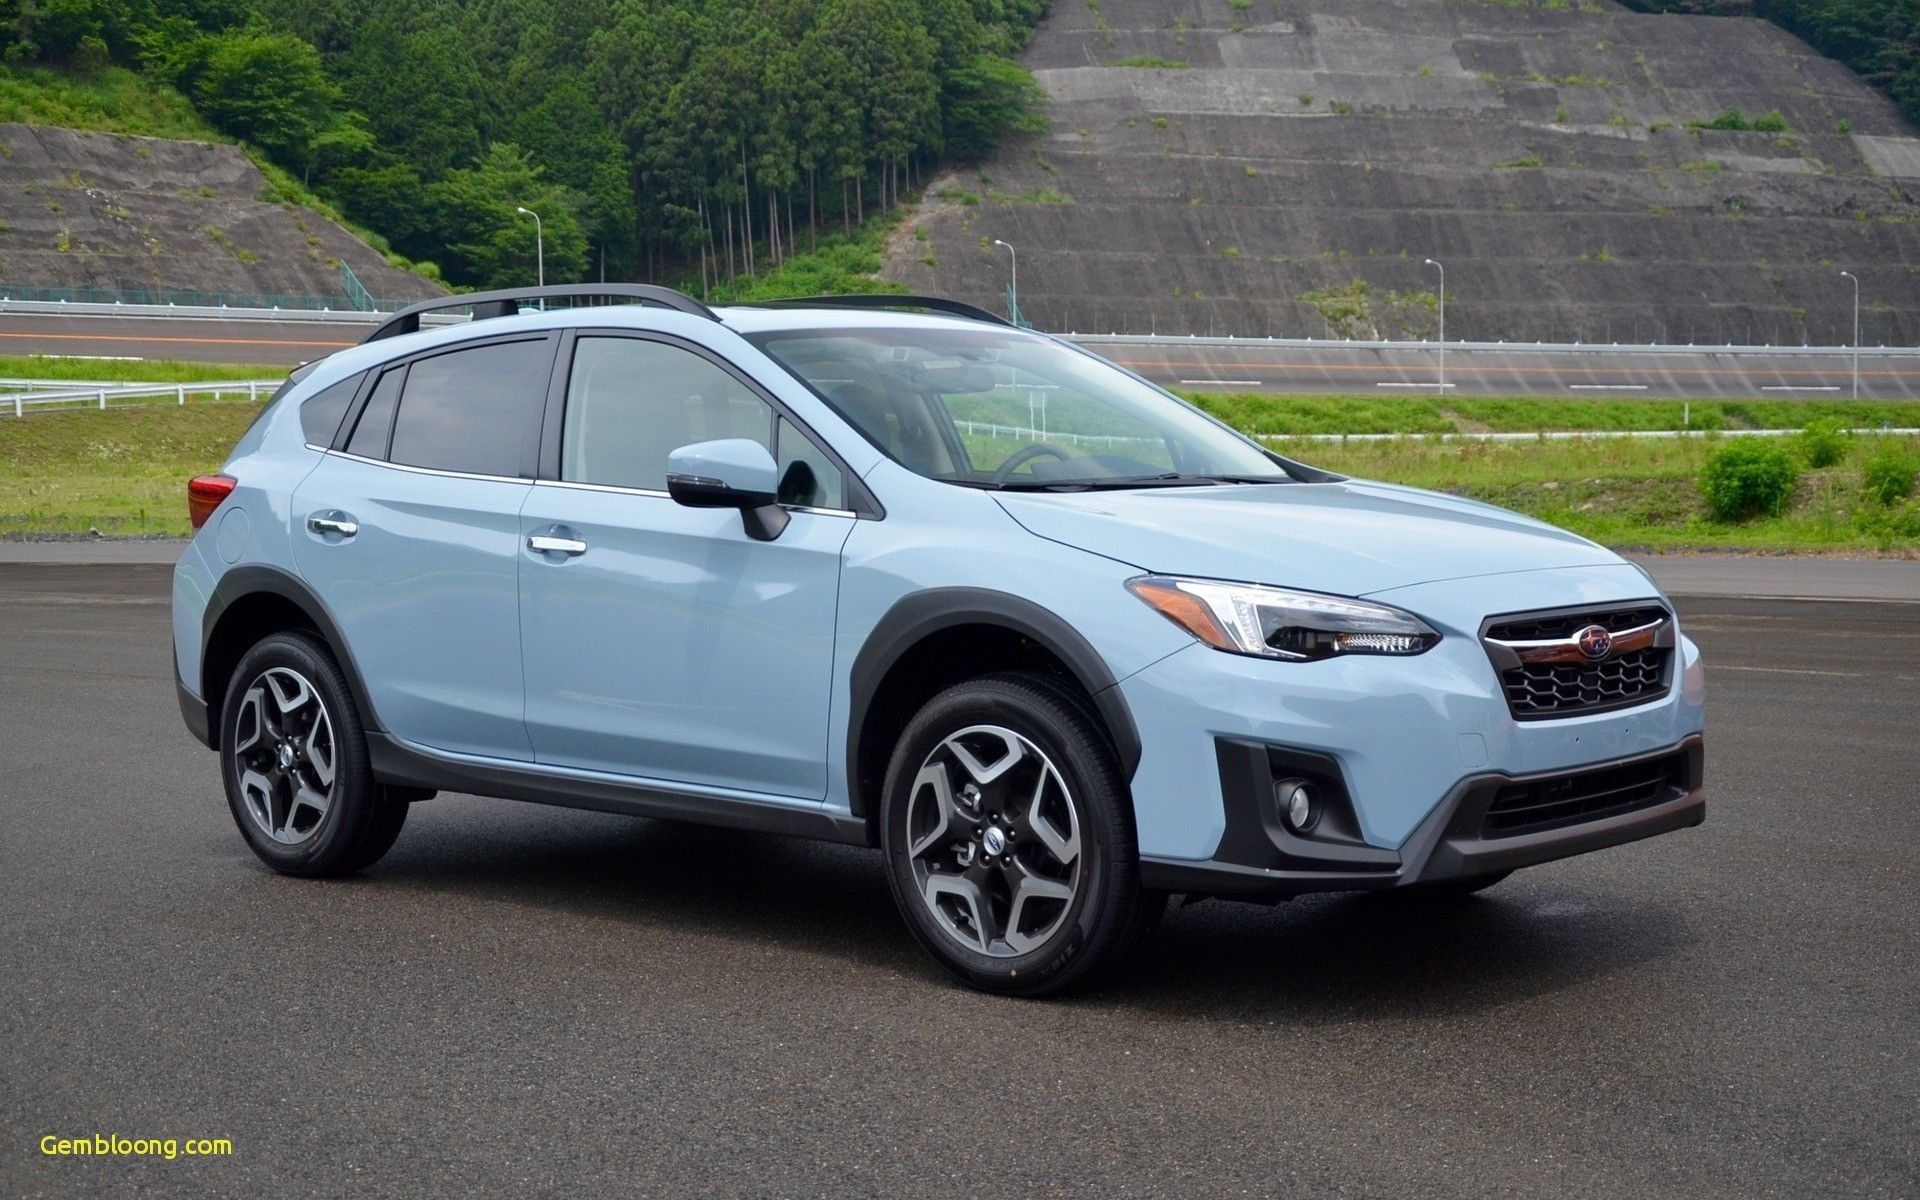 Car Trend Reviews The 2019 Subaru Crosstrek Sportier Xv Where Consumers Can Find Detailed Information On Specs Fuel Econo In 2020 Subaru Crosstrek Subaru Fuel Economy